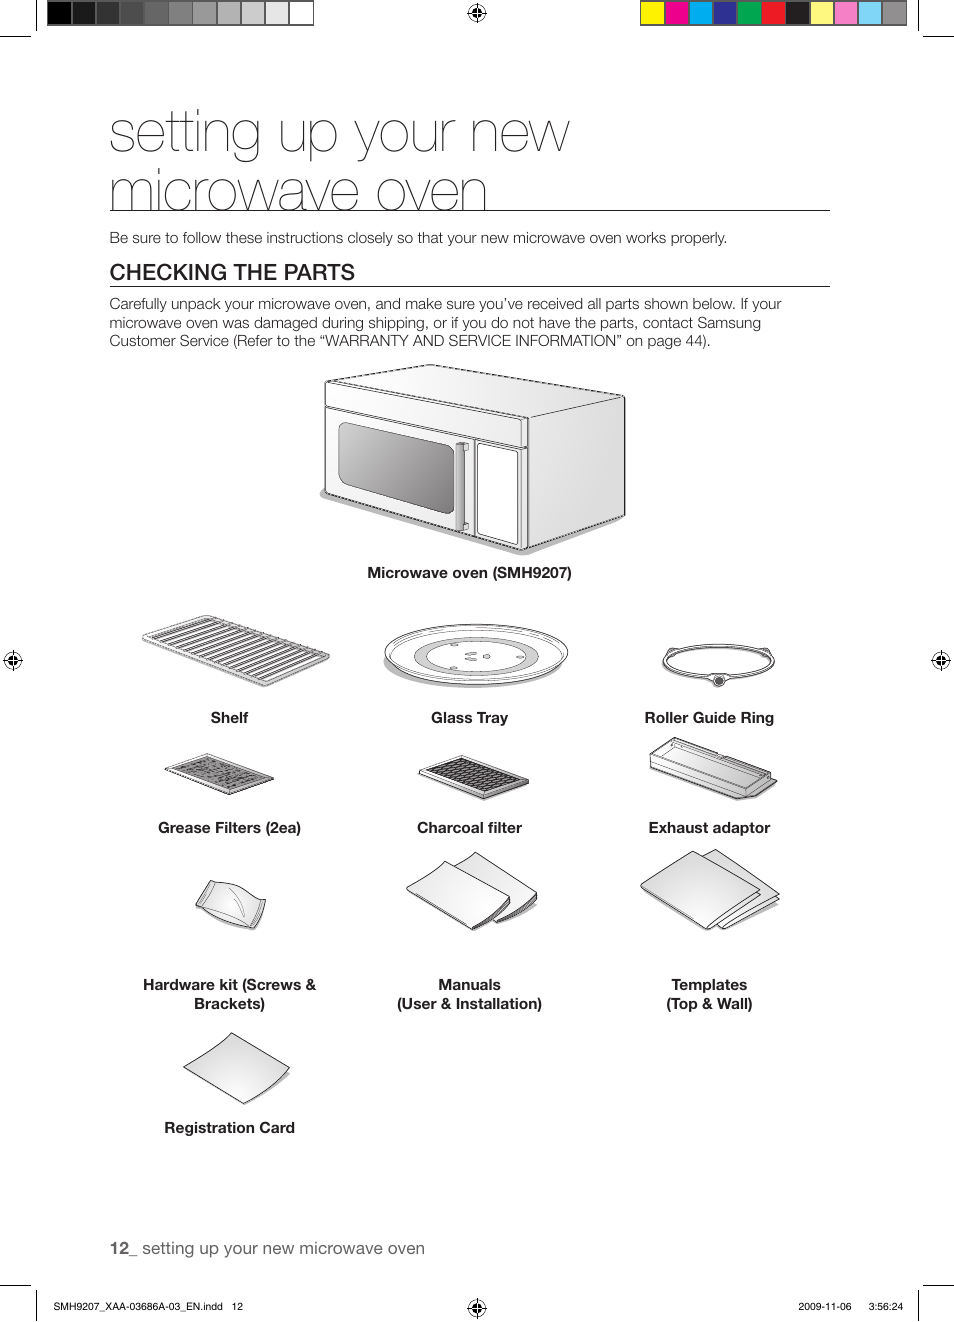 Setting up your new microwave oven | Samsung SMH9207ST-XAA User Manual |  Page 12 / 48